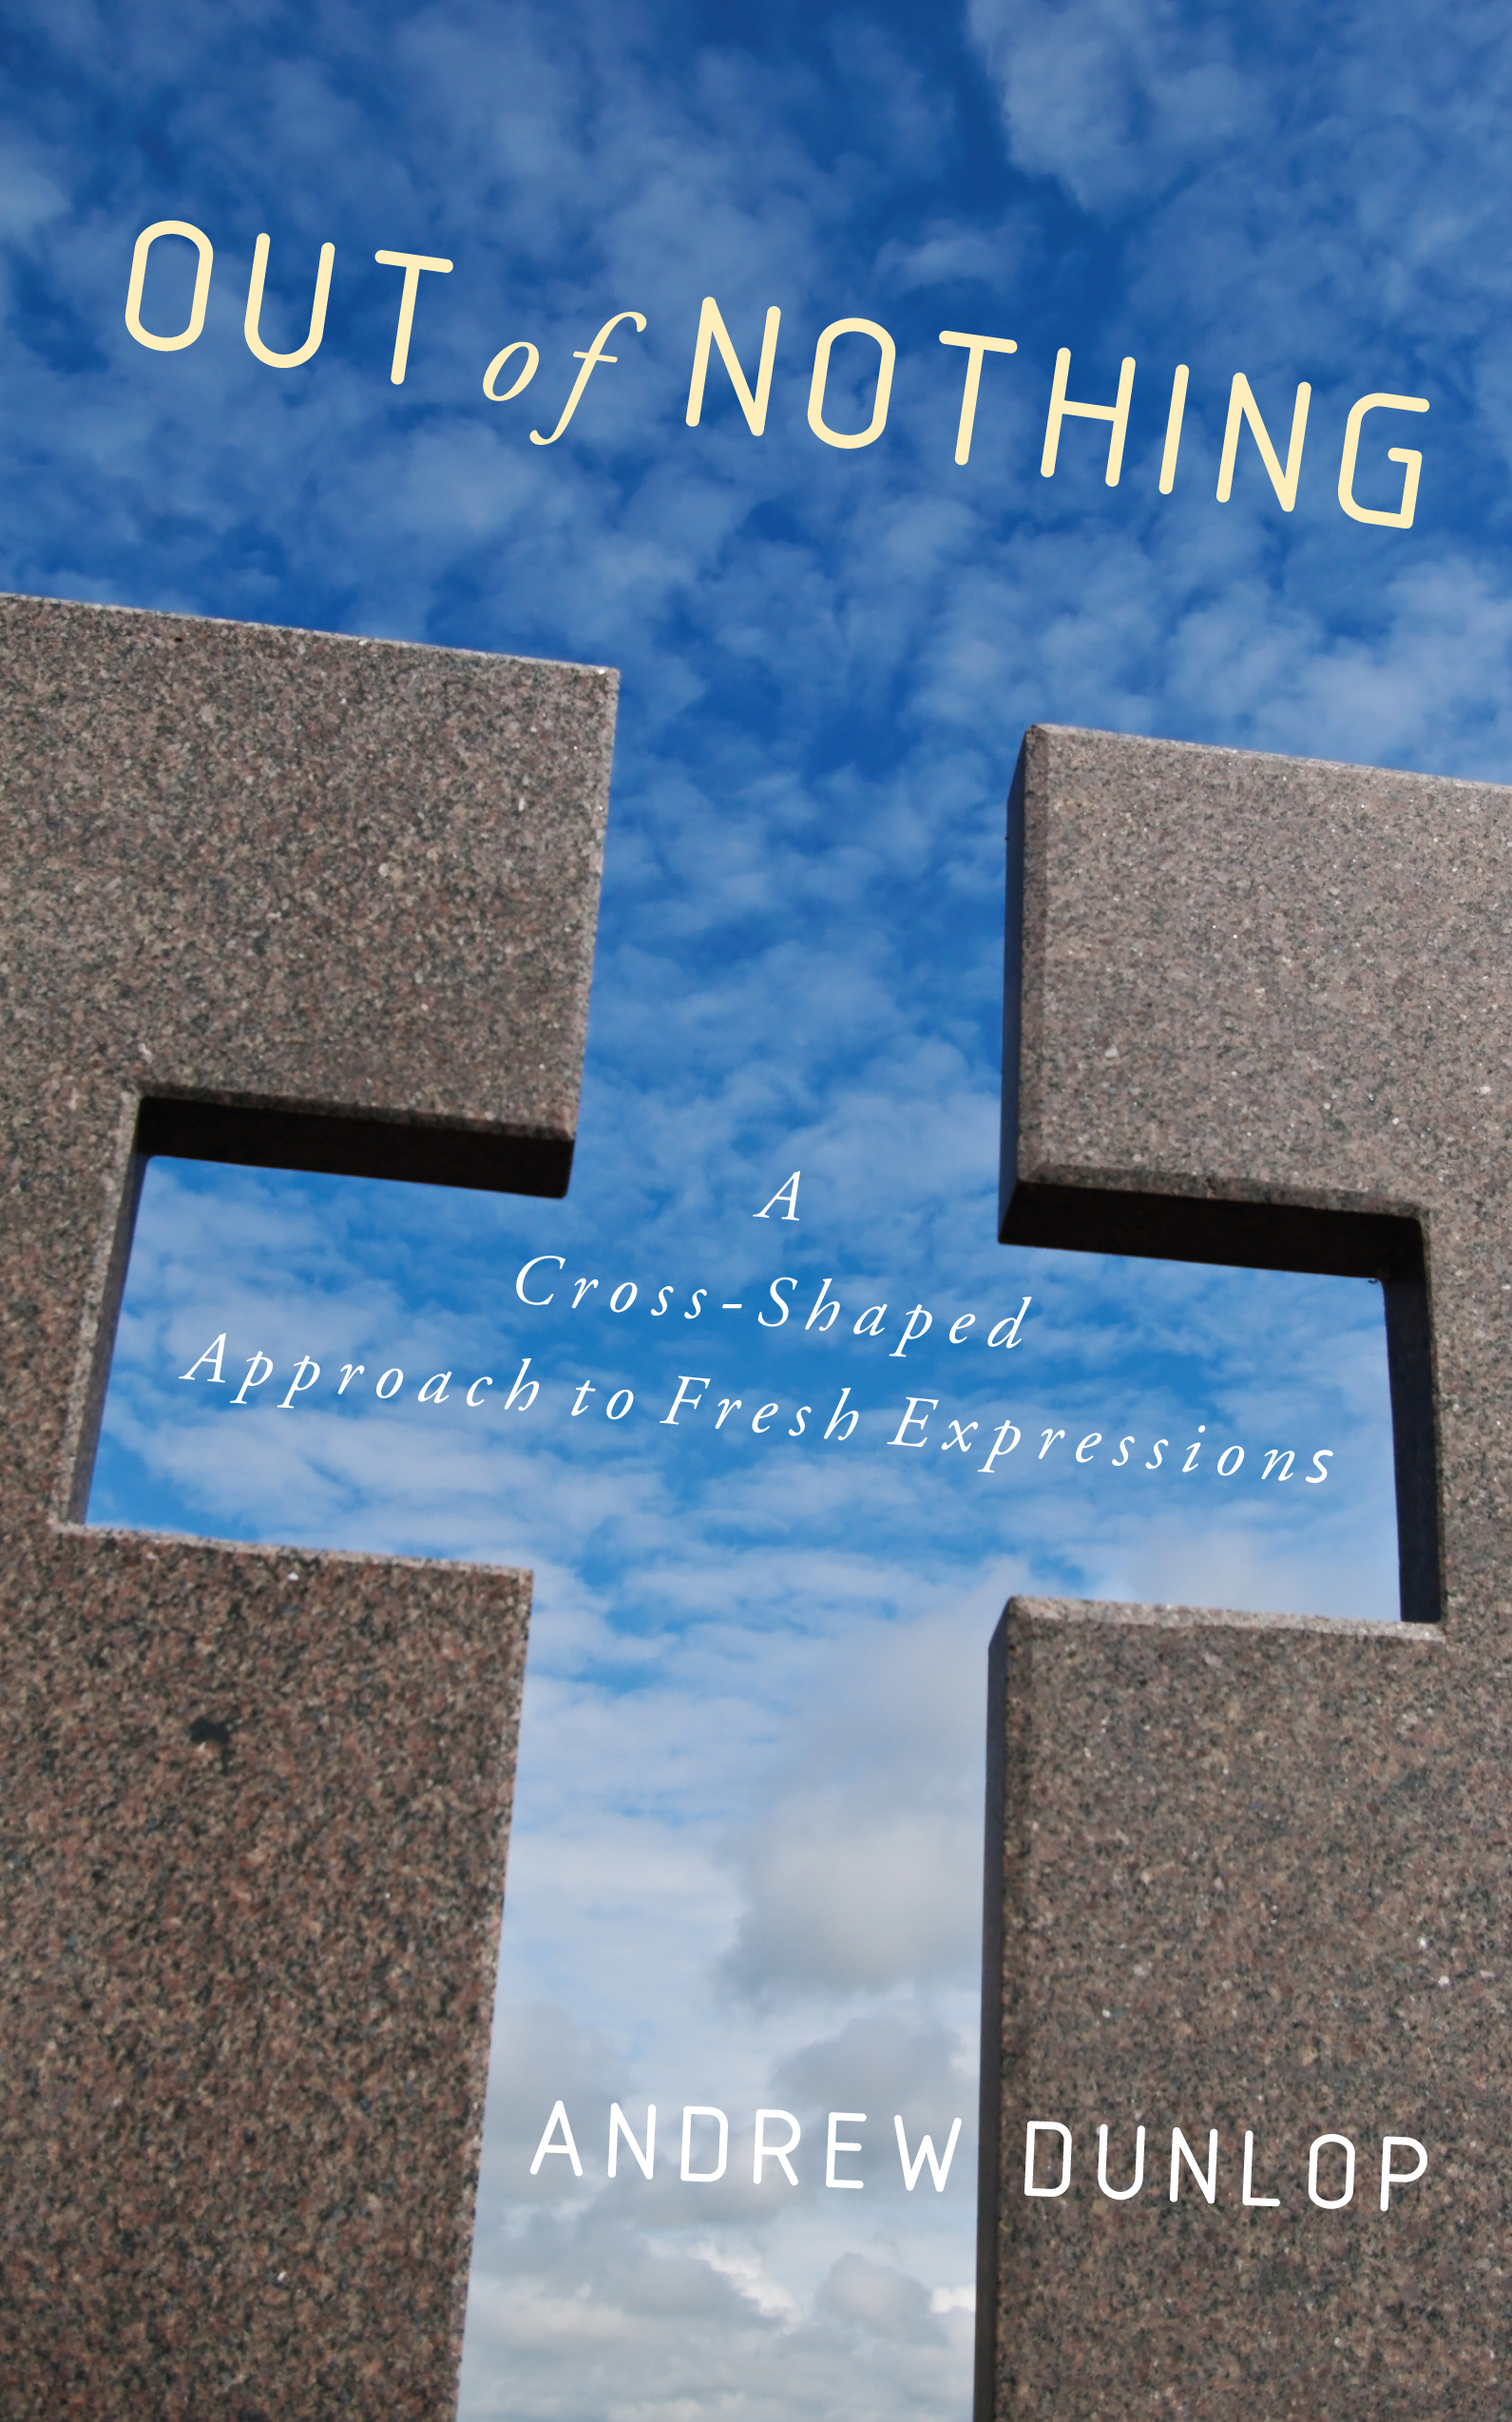 Out of Nothing: A Cross-Shaped Approach to Fresh Expressions